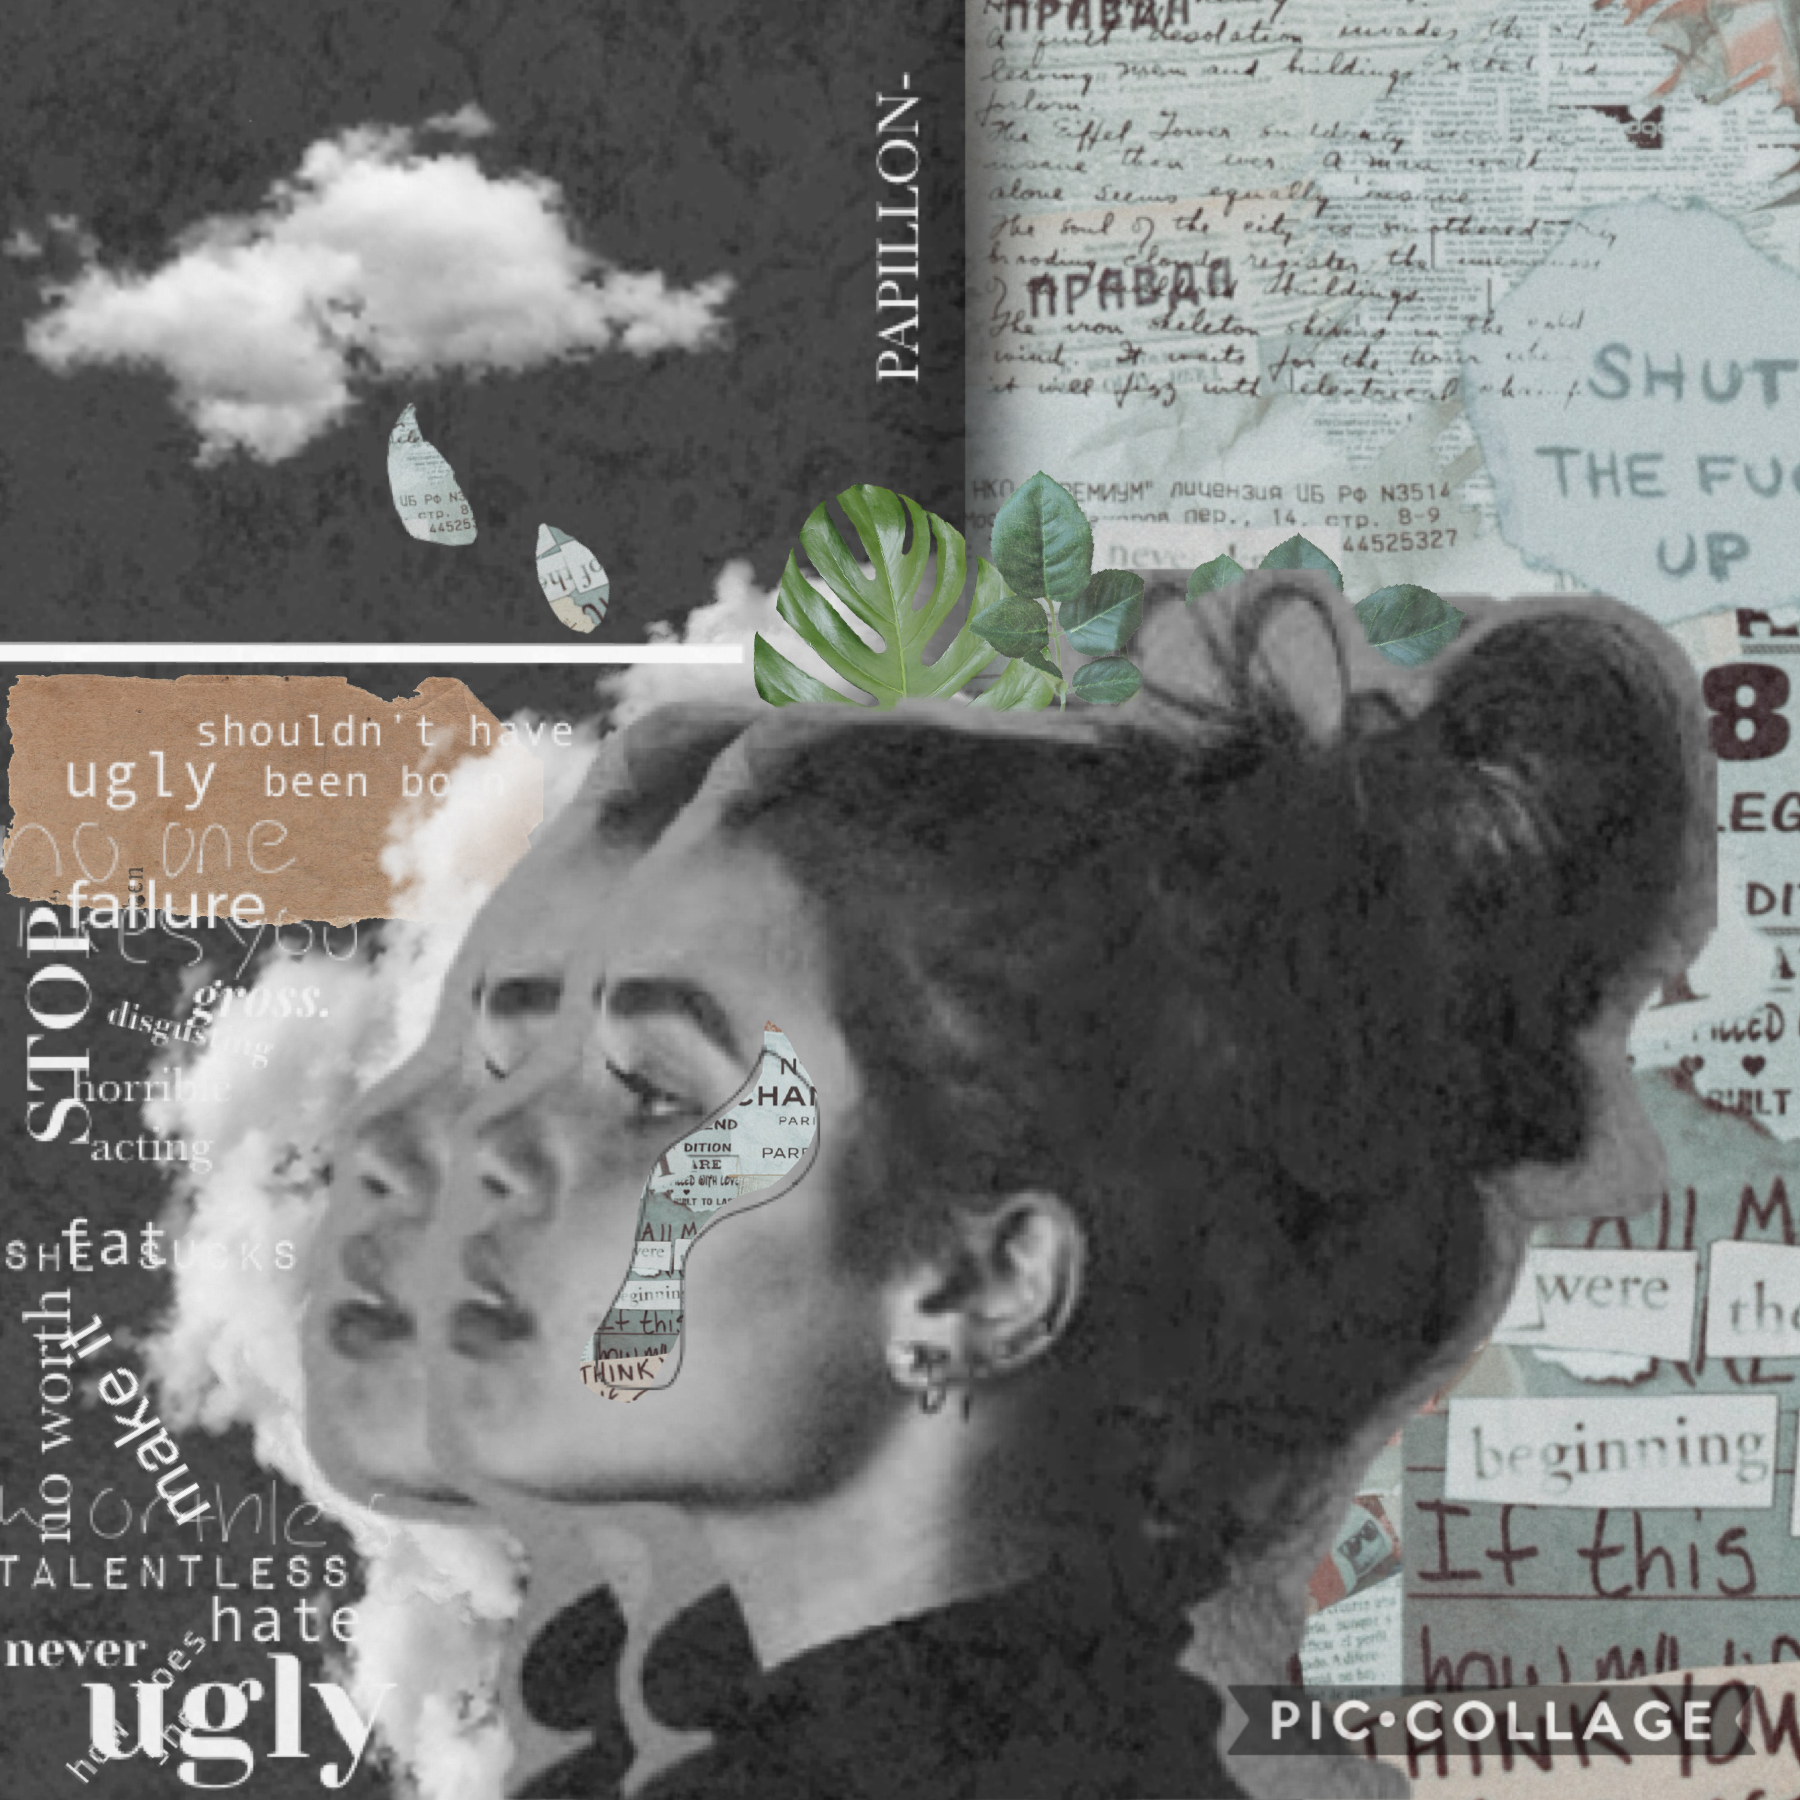 REPUT<tap>ATION hi i'm sorryyyyy this is not what i hoped this would turn out like :(((. i've been trying to fix this for soo long but i can't rlly do anything about it as i've reaches the scrap limit. but this is like a sad influencer affected by the med